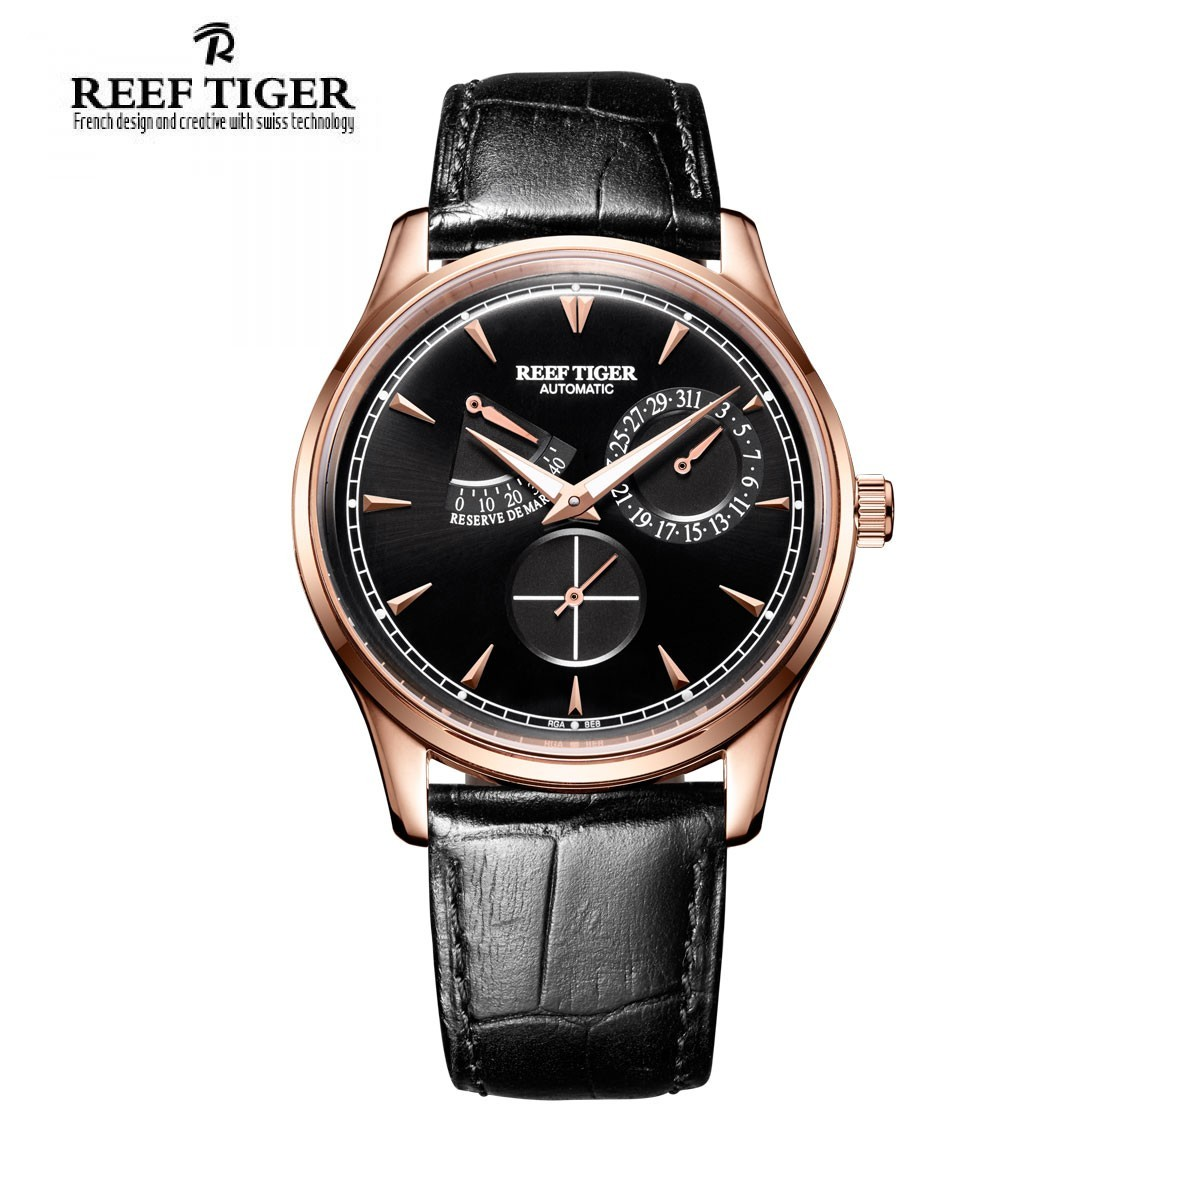 Artist Grand Master 41mm Rose Gold RGA1980-PBB